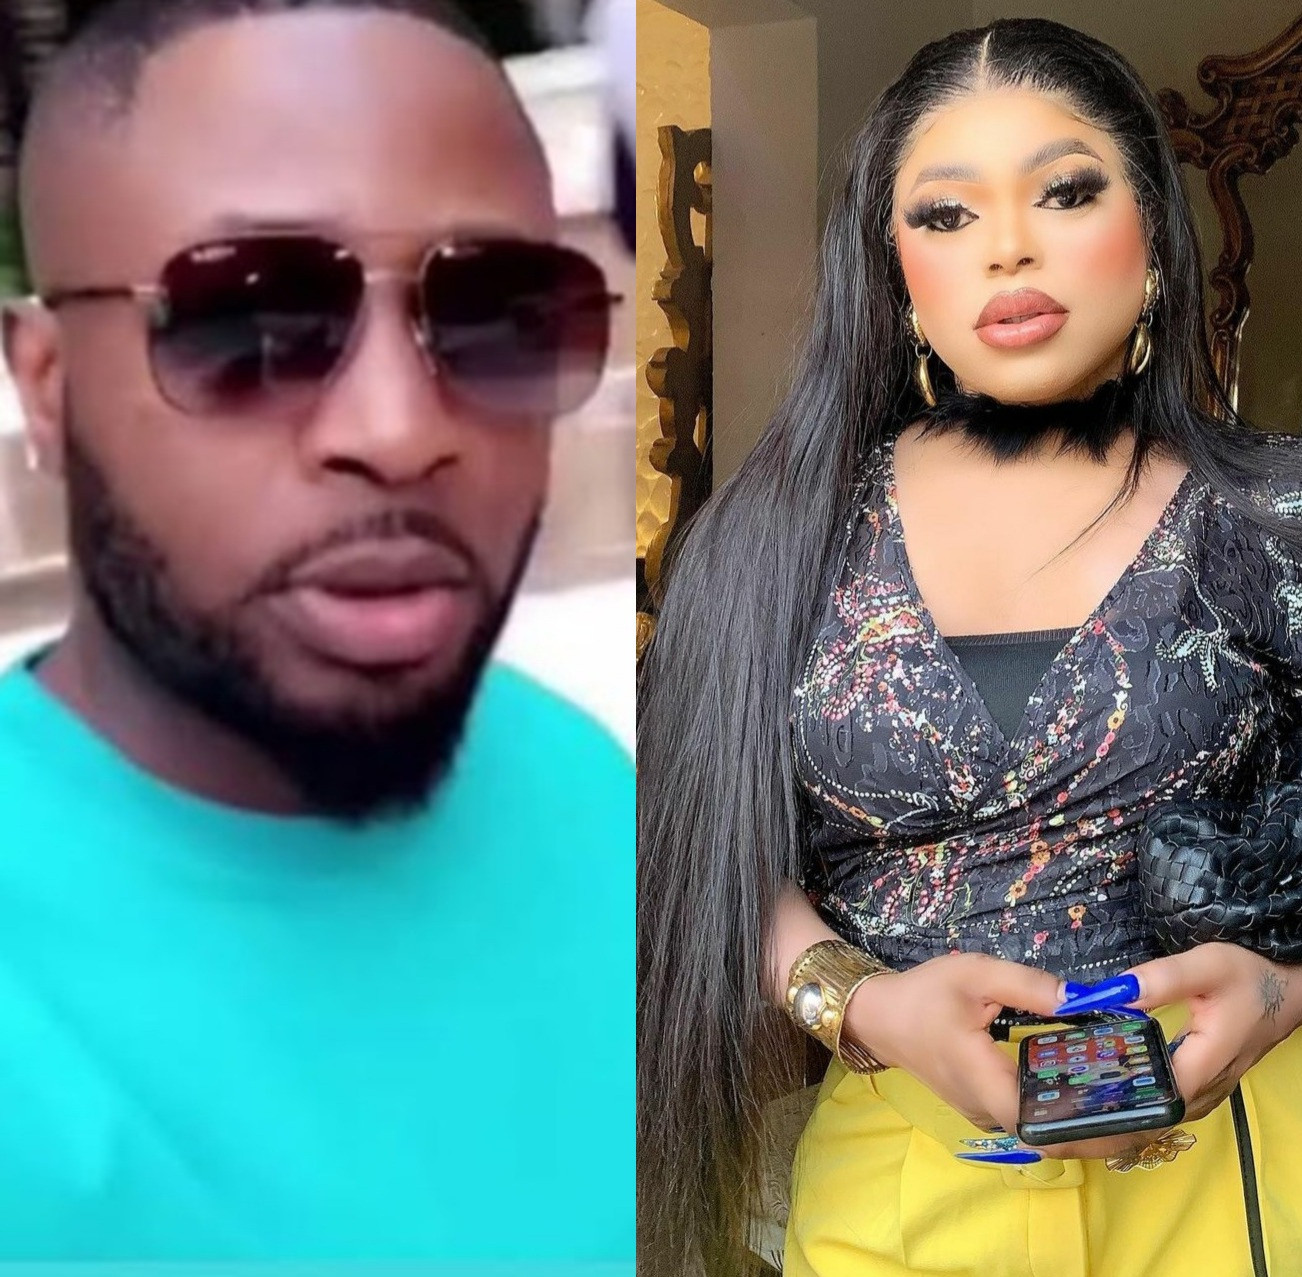 Your Time Is Up Bobrisky Drags Tunde Ednut .tunde ednut kosowo new music 2016, tunde ednut deported, baby boo by tunde ednut official video, tunde ednut performing catching cold in abuja, speed darlington rains heavy curses on tunde ednut, shocking truth about tunde ednut revealed. your time is up bobrisky drags tunde ednut